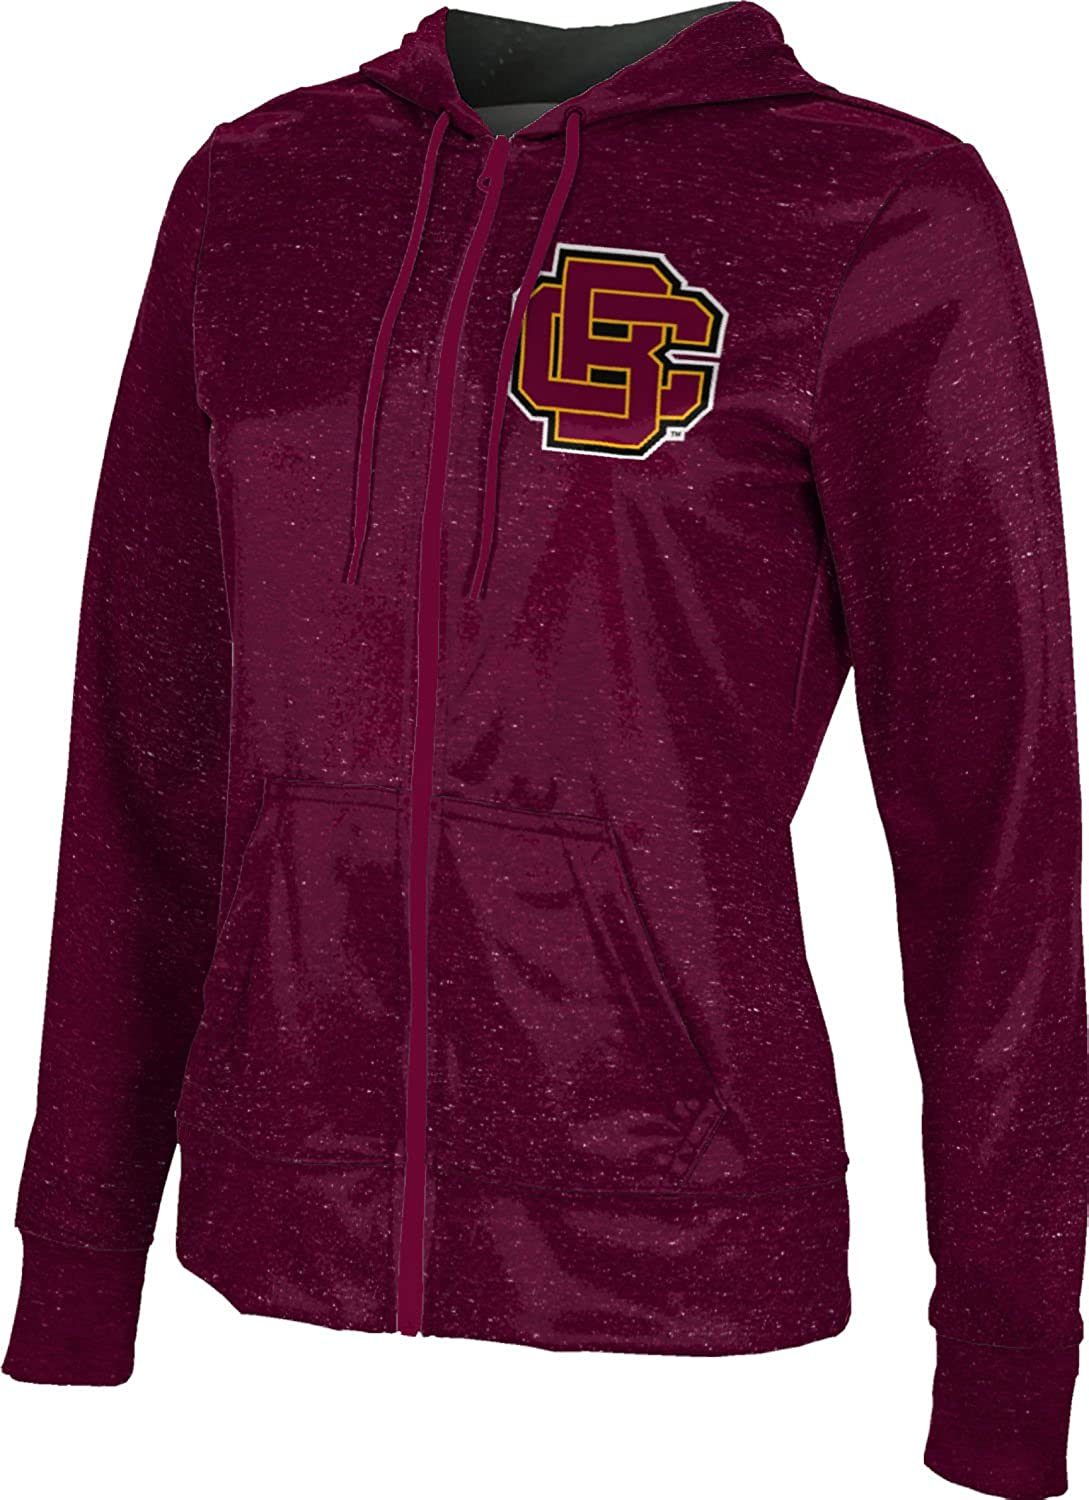 ProSphere Bethune-Cookman University Girls Zipper Hoodie Heather School Spirit Sweatshirt